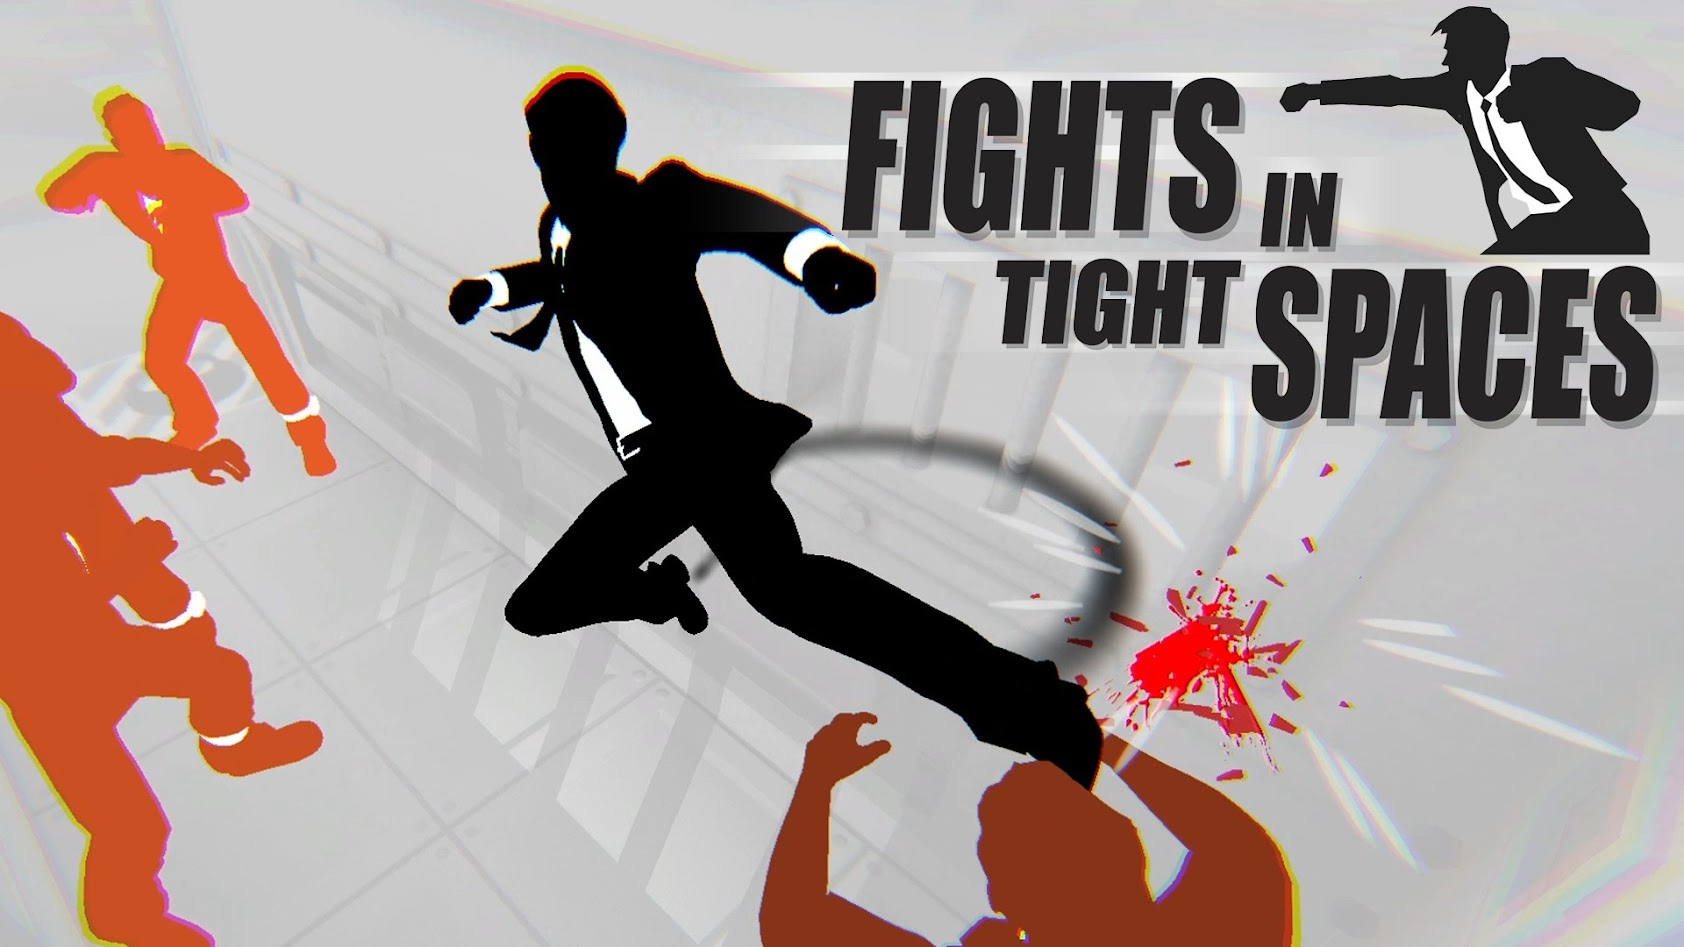 Fights In Tight Spaces Is Shaping Up To Be A Very Fun Experience